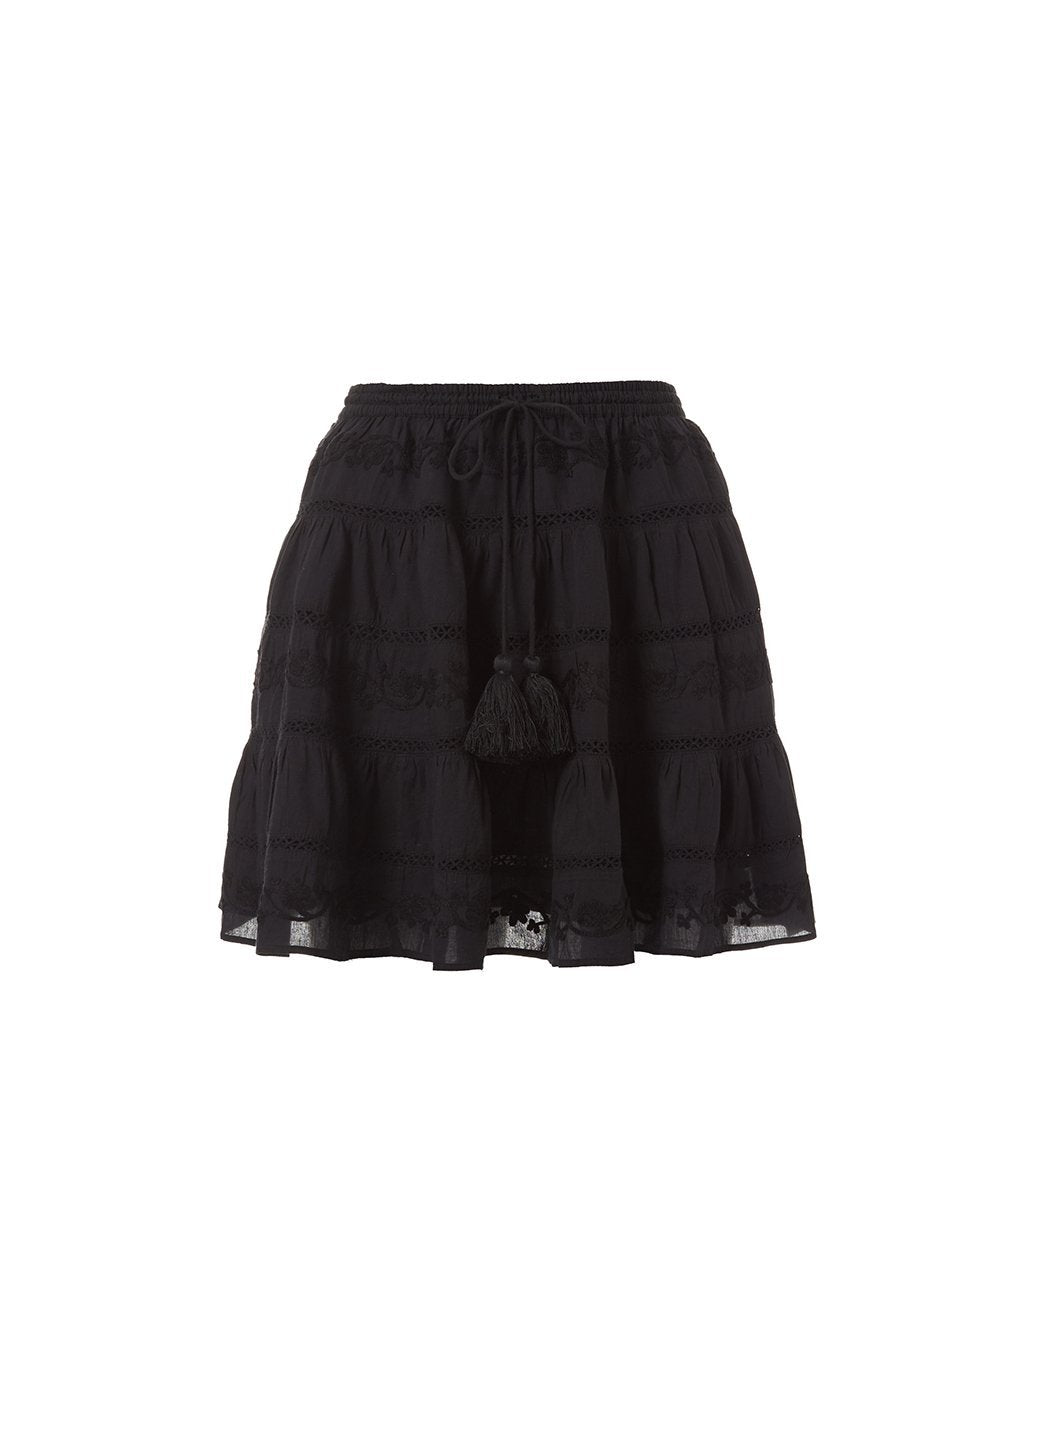 anita black tassle skirt 2019